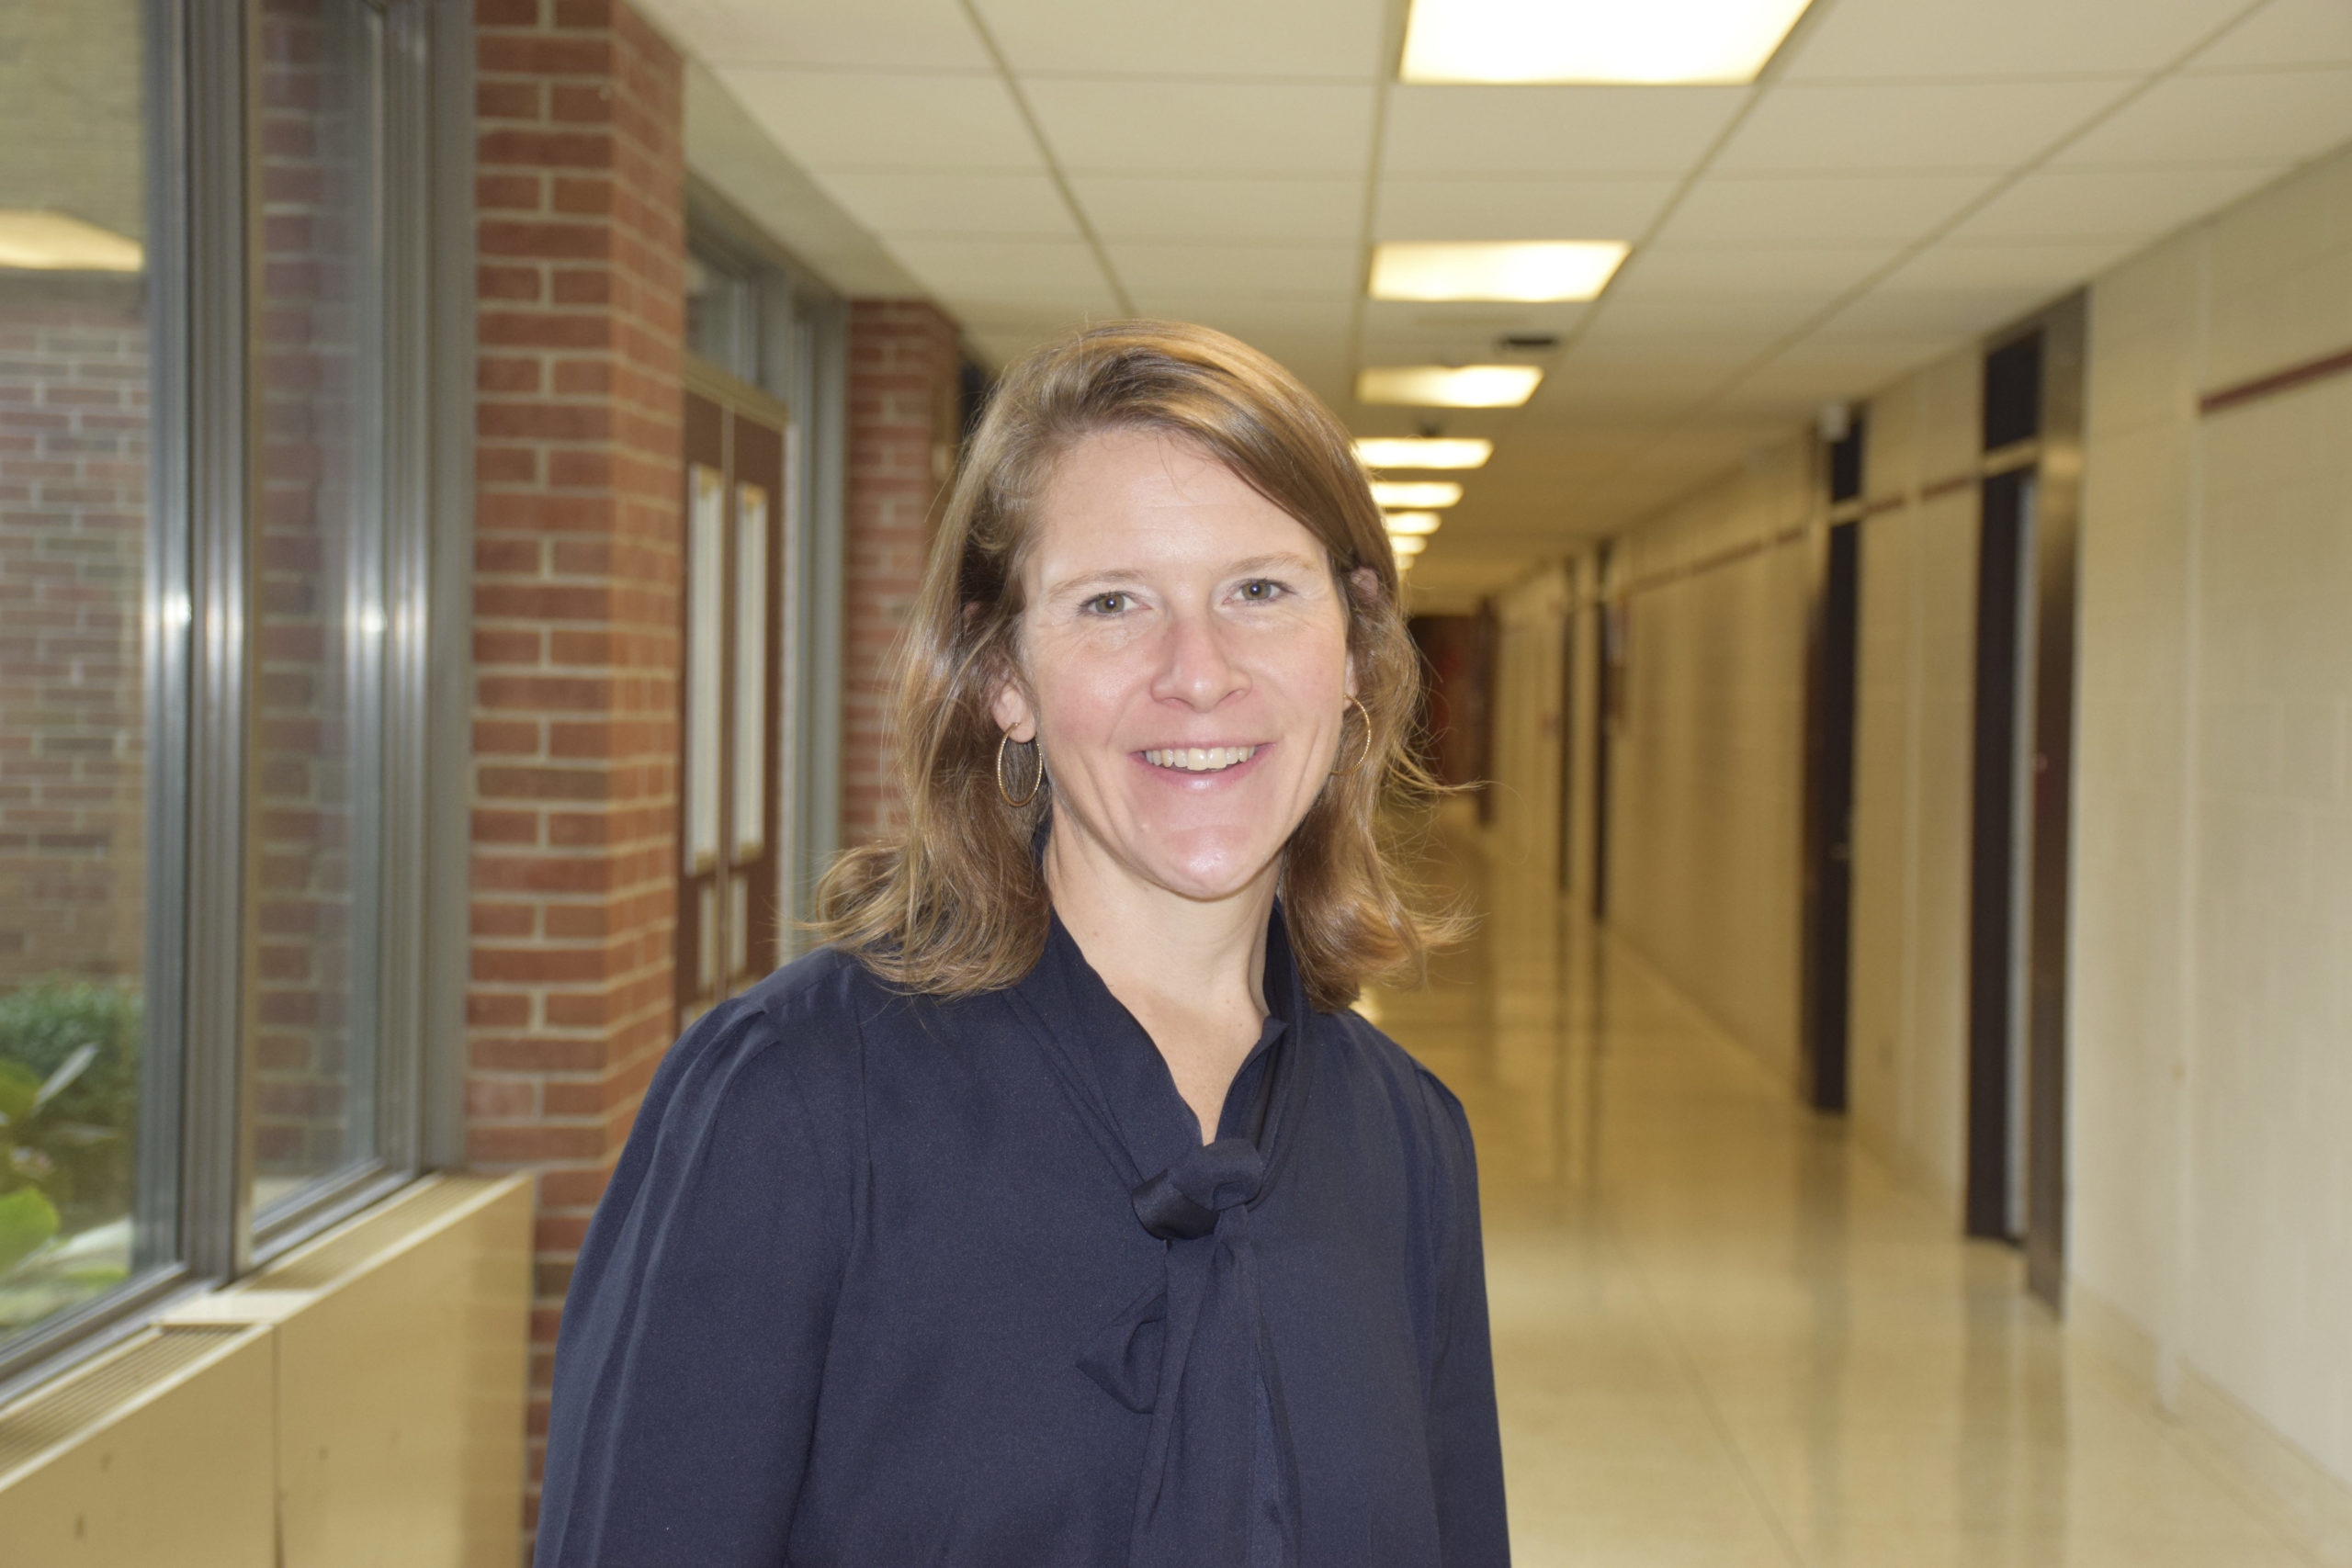 Sara Smith, a 14-year veteran of the district, is the new assistant principal at Southampton High School.